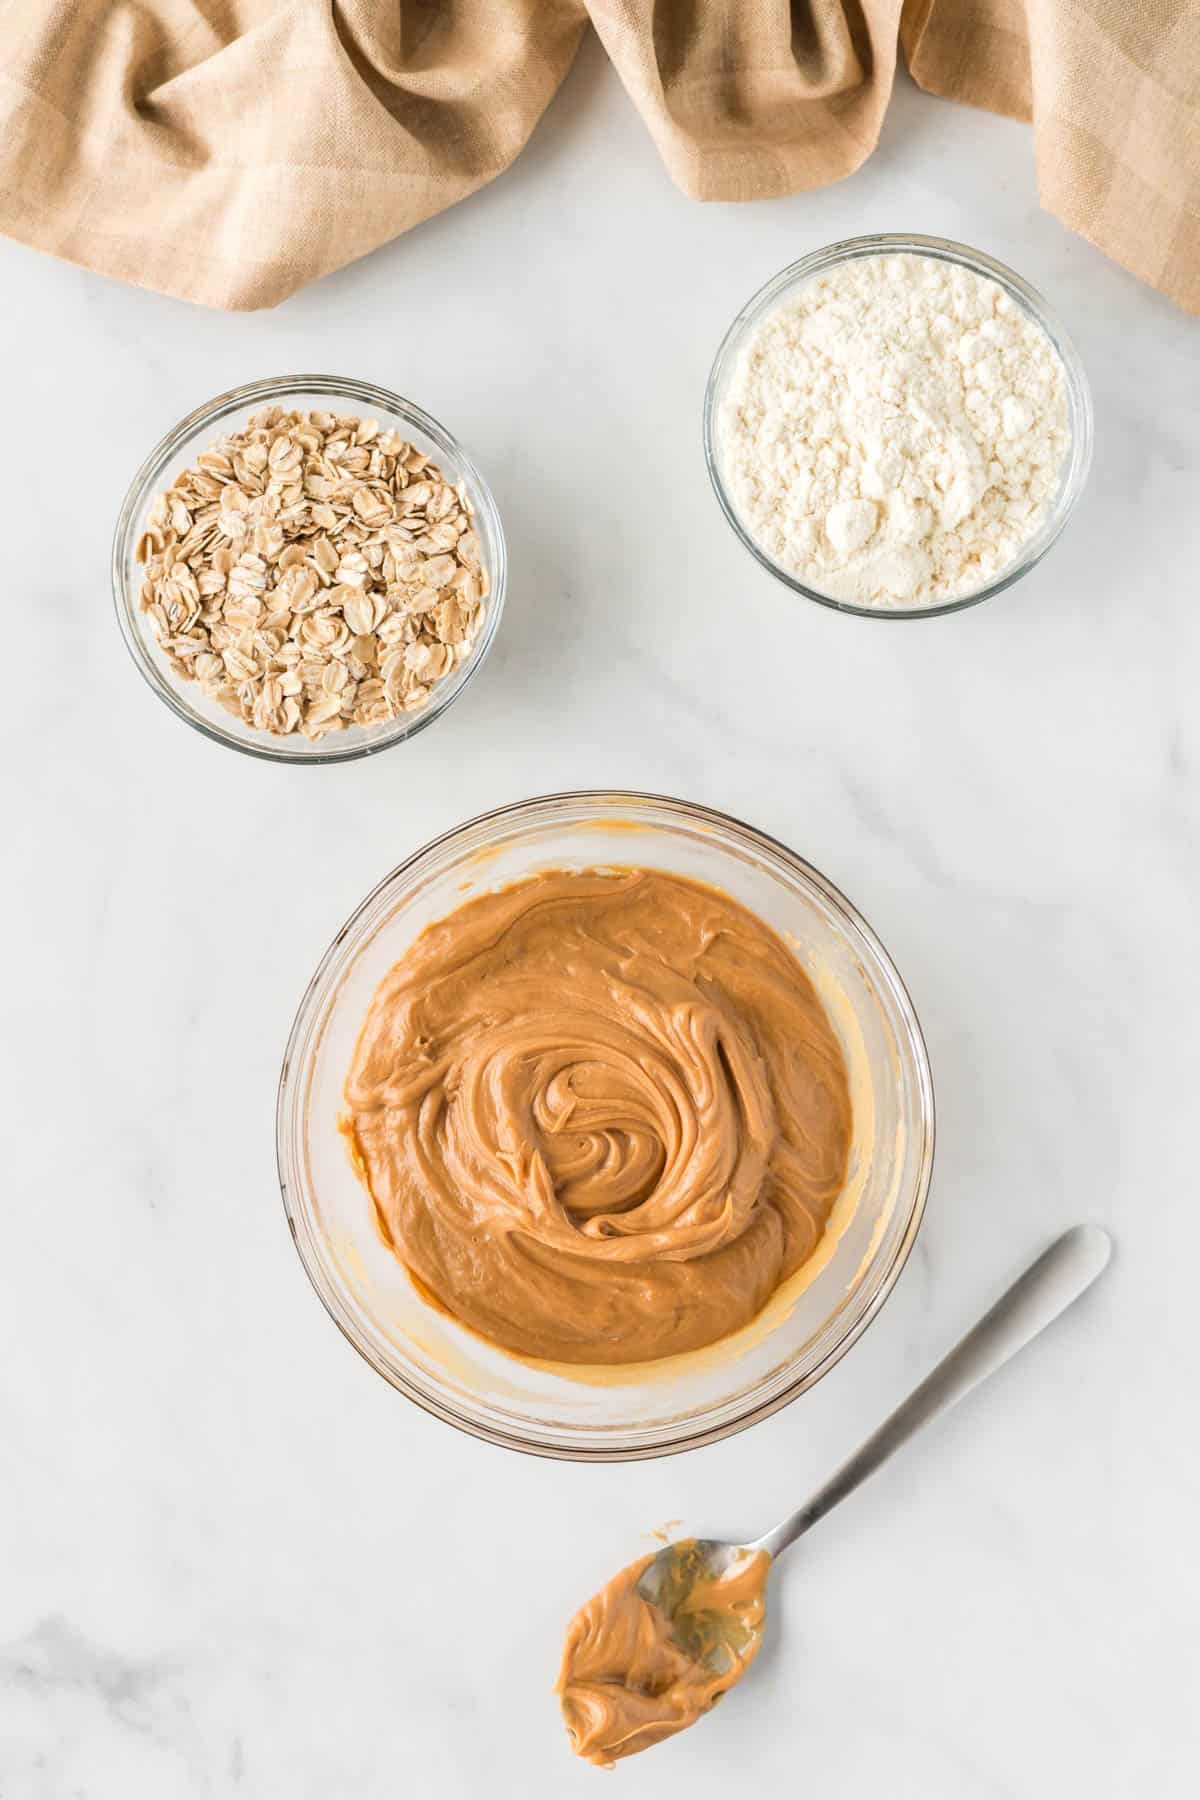 peanut butter, honey, oats, and protein powder